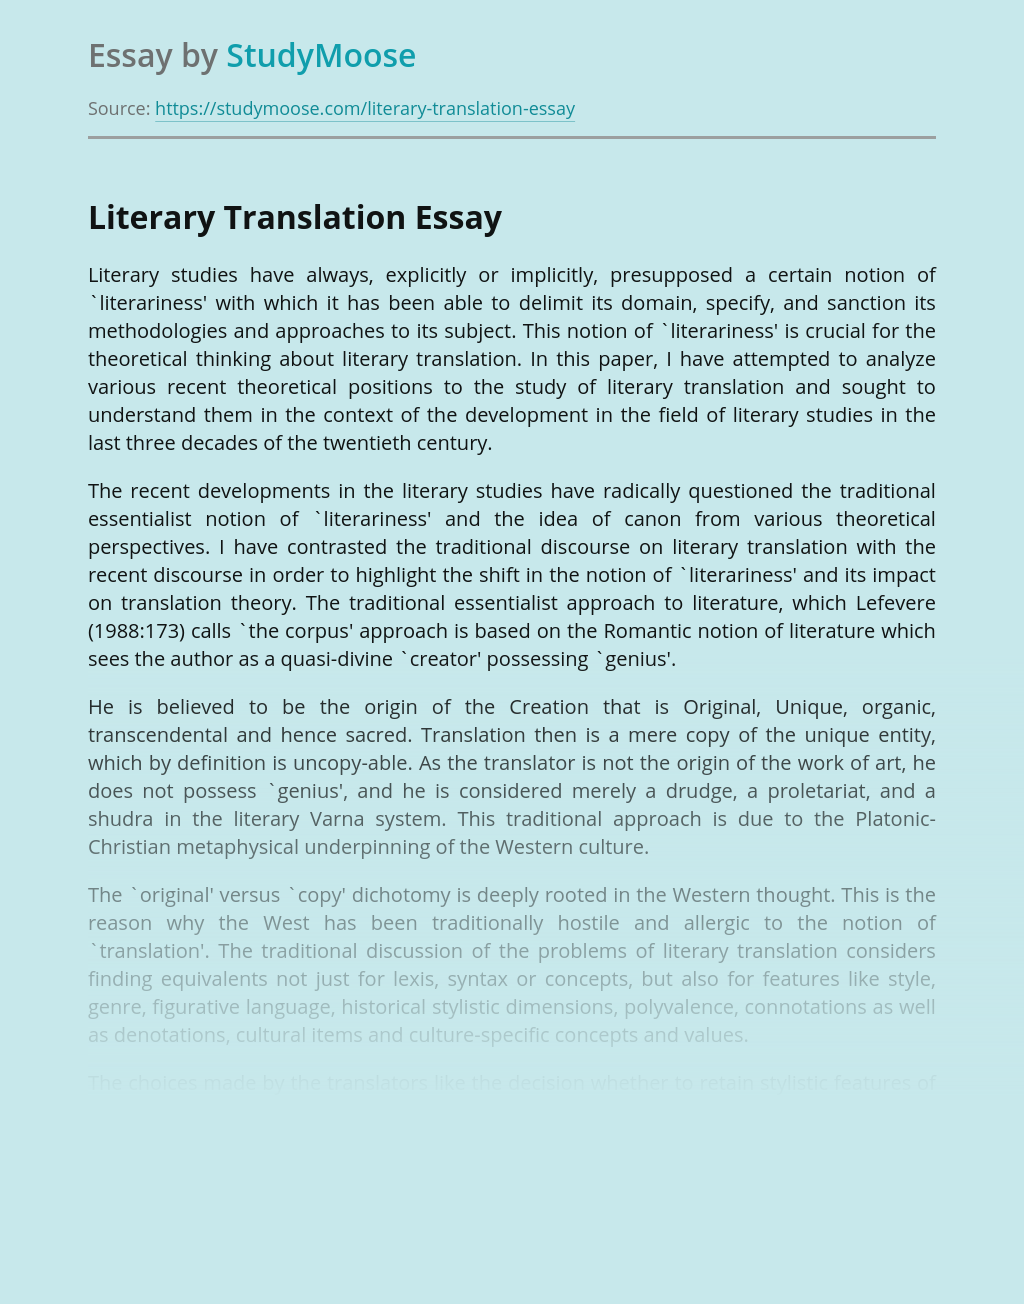 Literary Translation: Recent Theoretical Developments